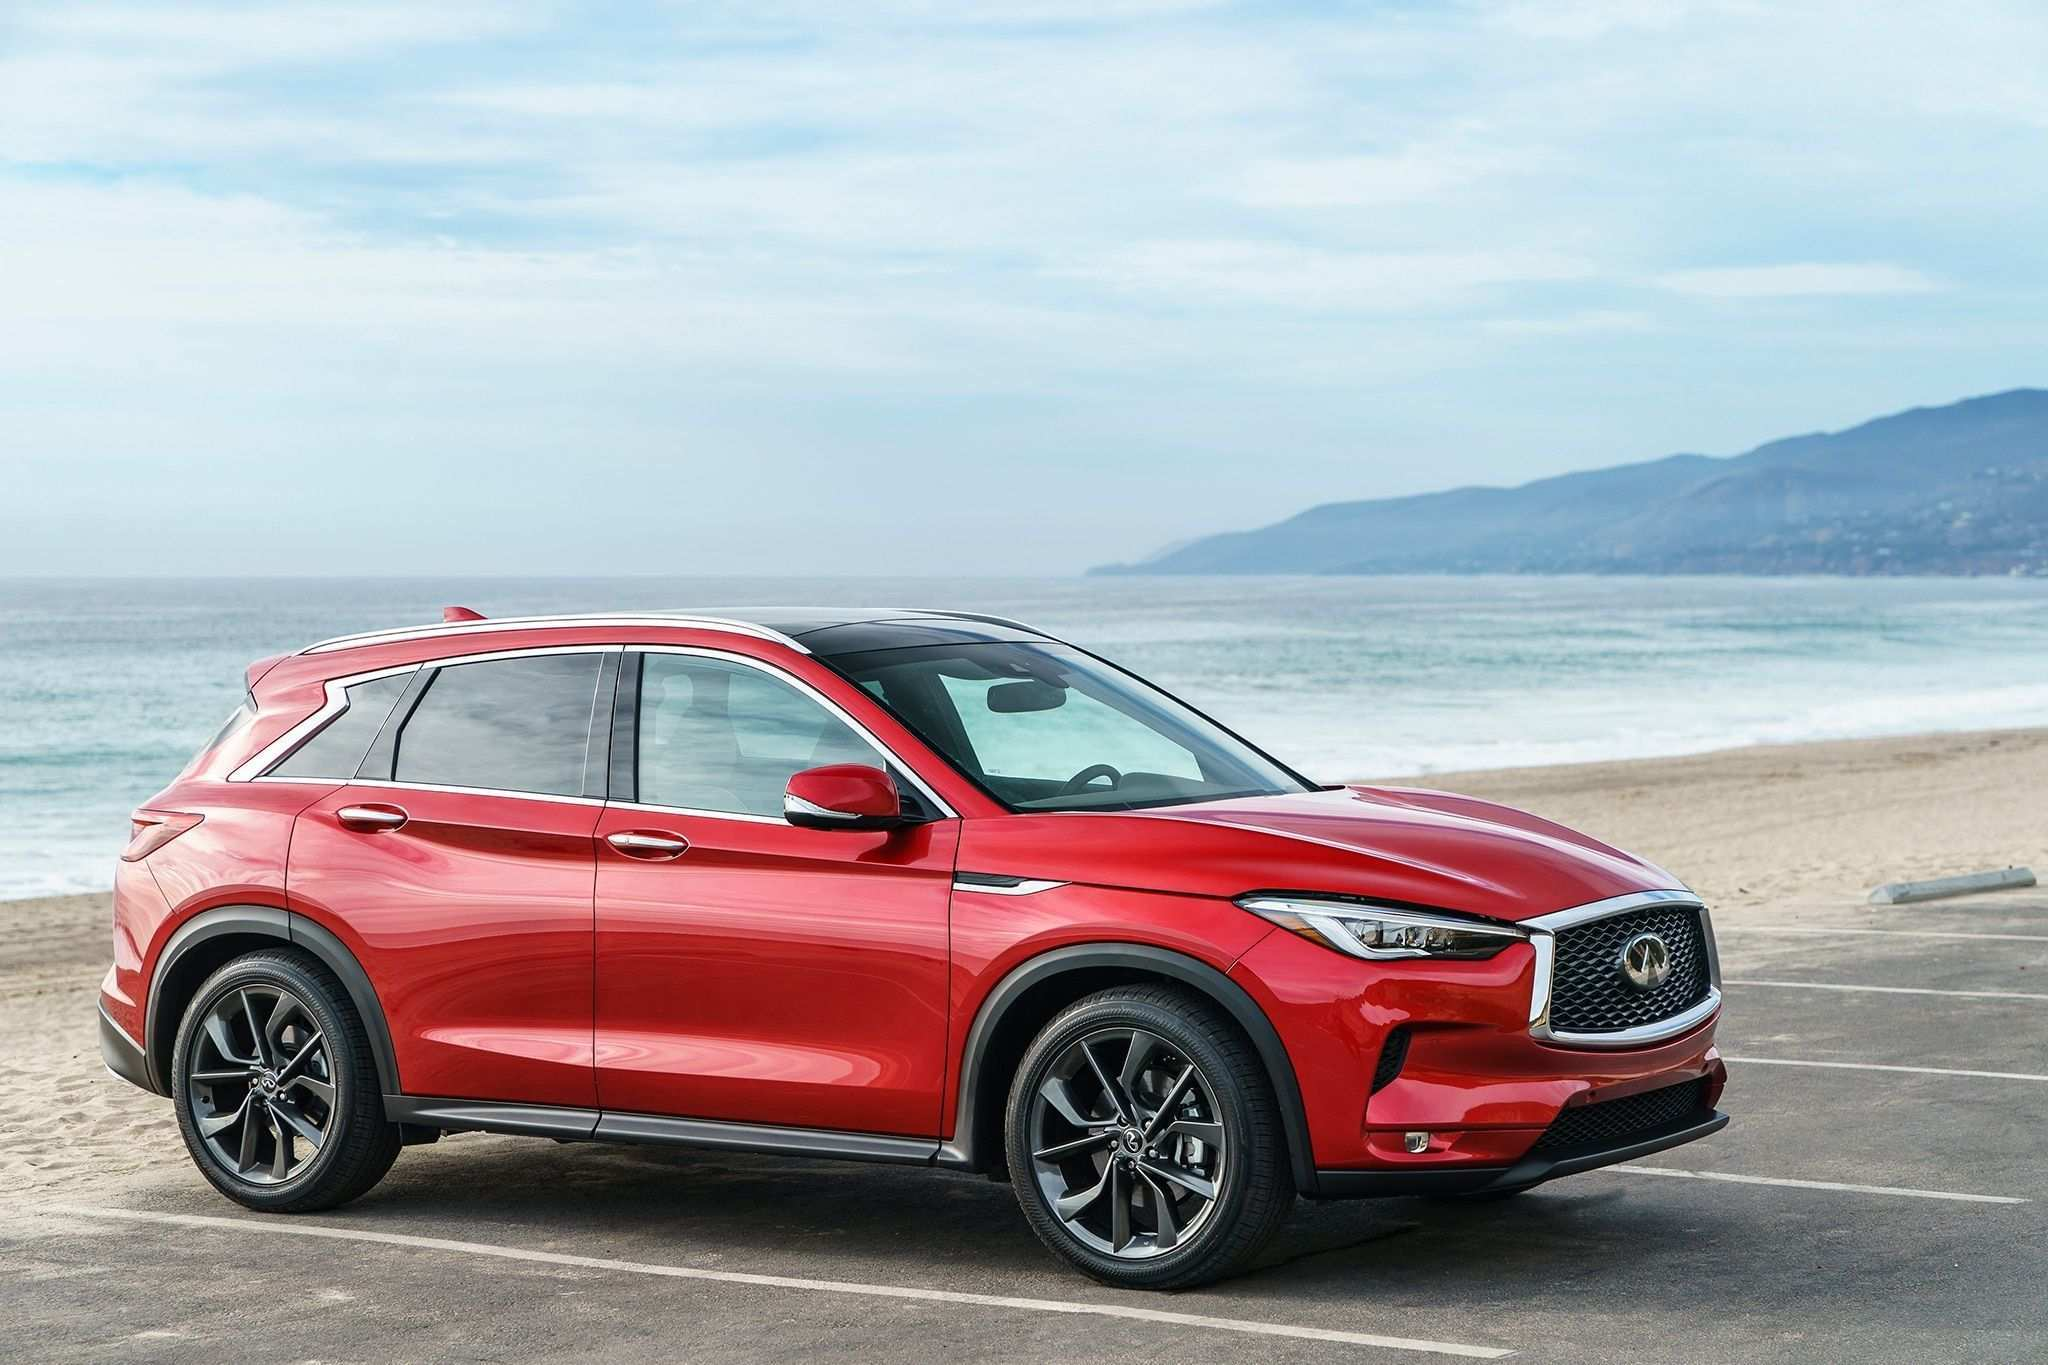 11 Best Review New Infiniti Concept Car 2019 Redesign Pricing with New Infiniti Concept Car 2019 Redesign